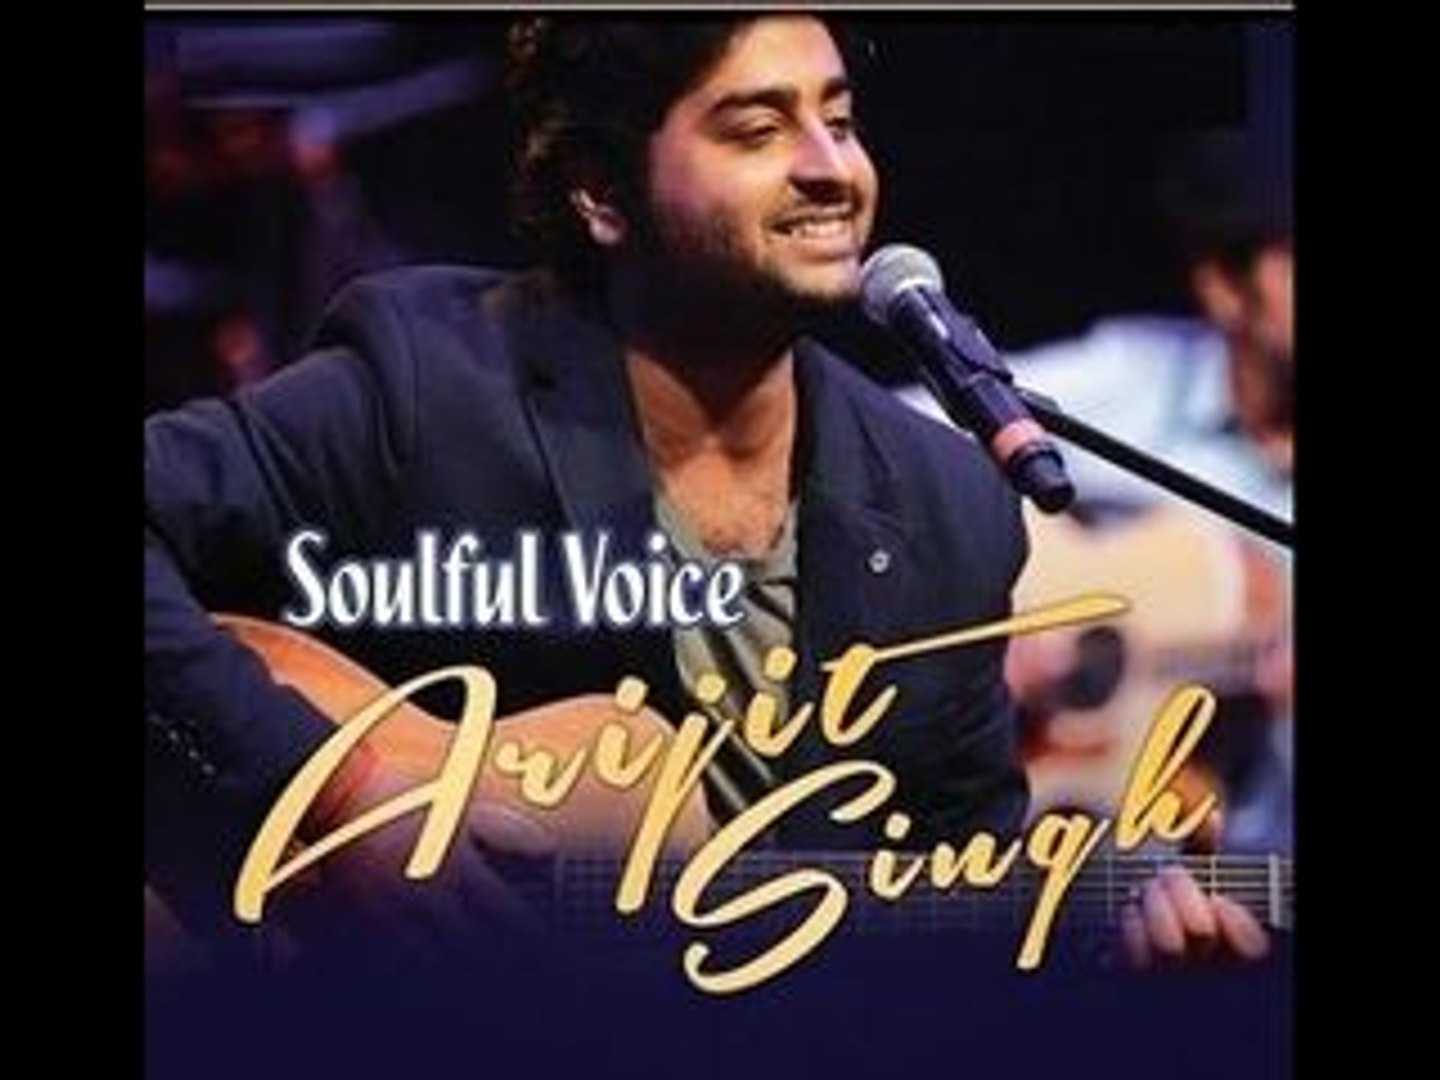 Arijit Singh Mashup 2015 Full Video SaD songs